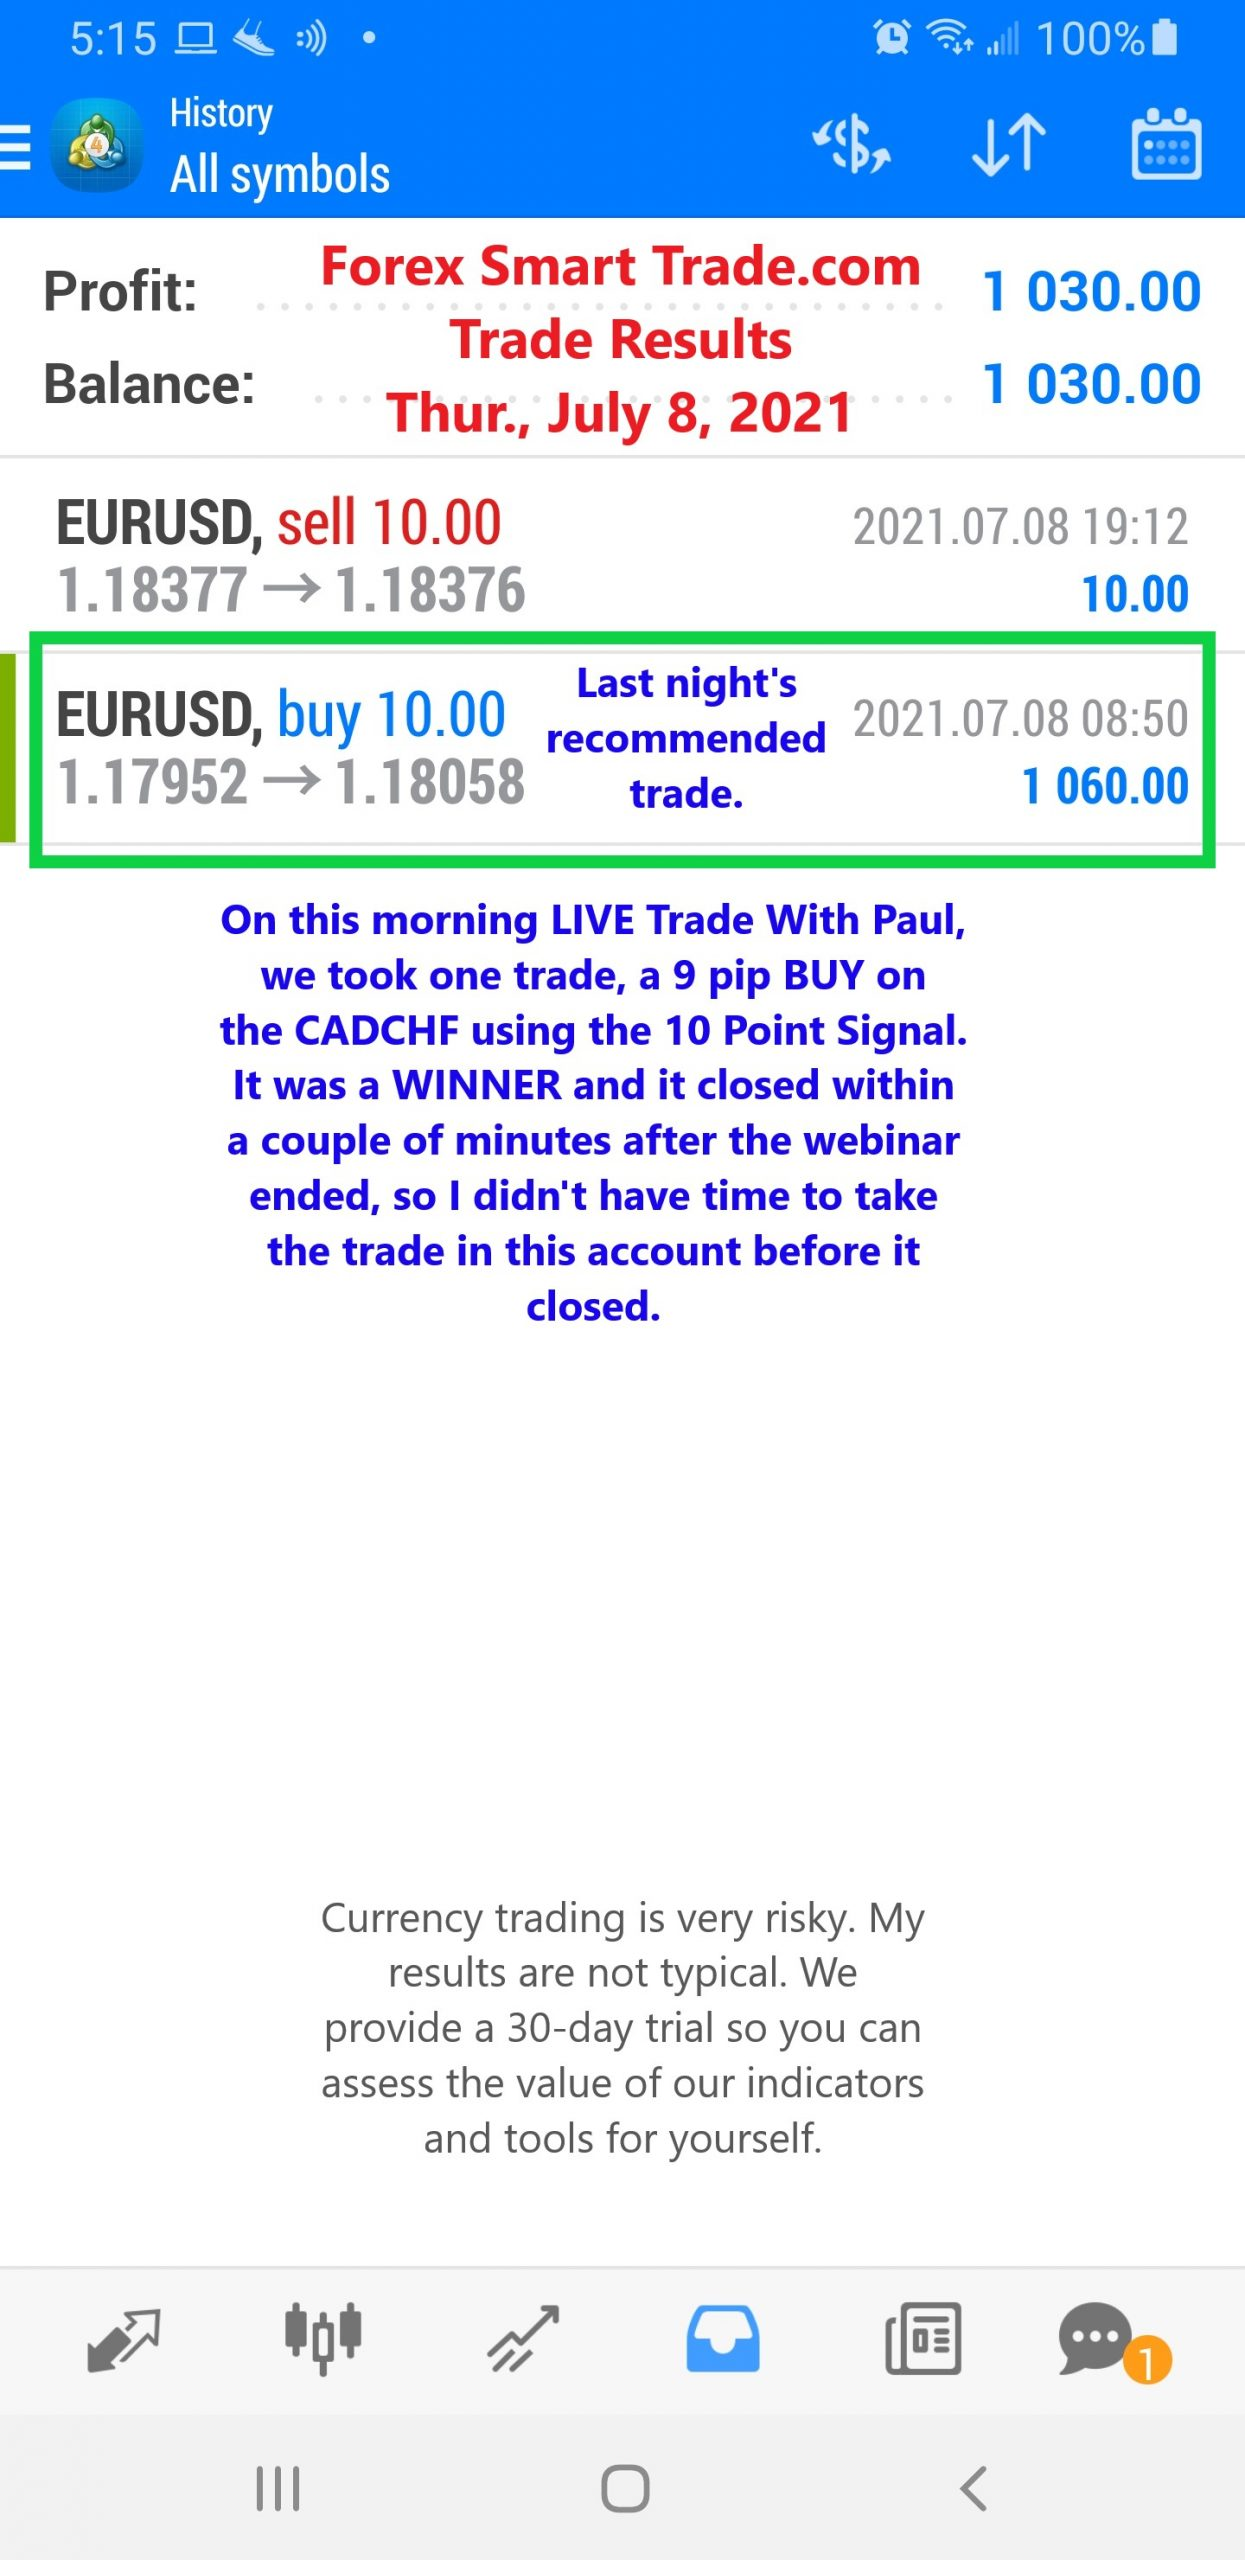 Forex Smart Trade Results July 8 2021